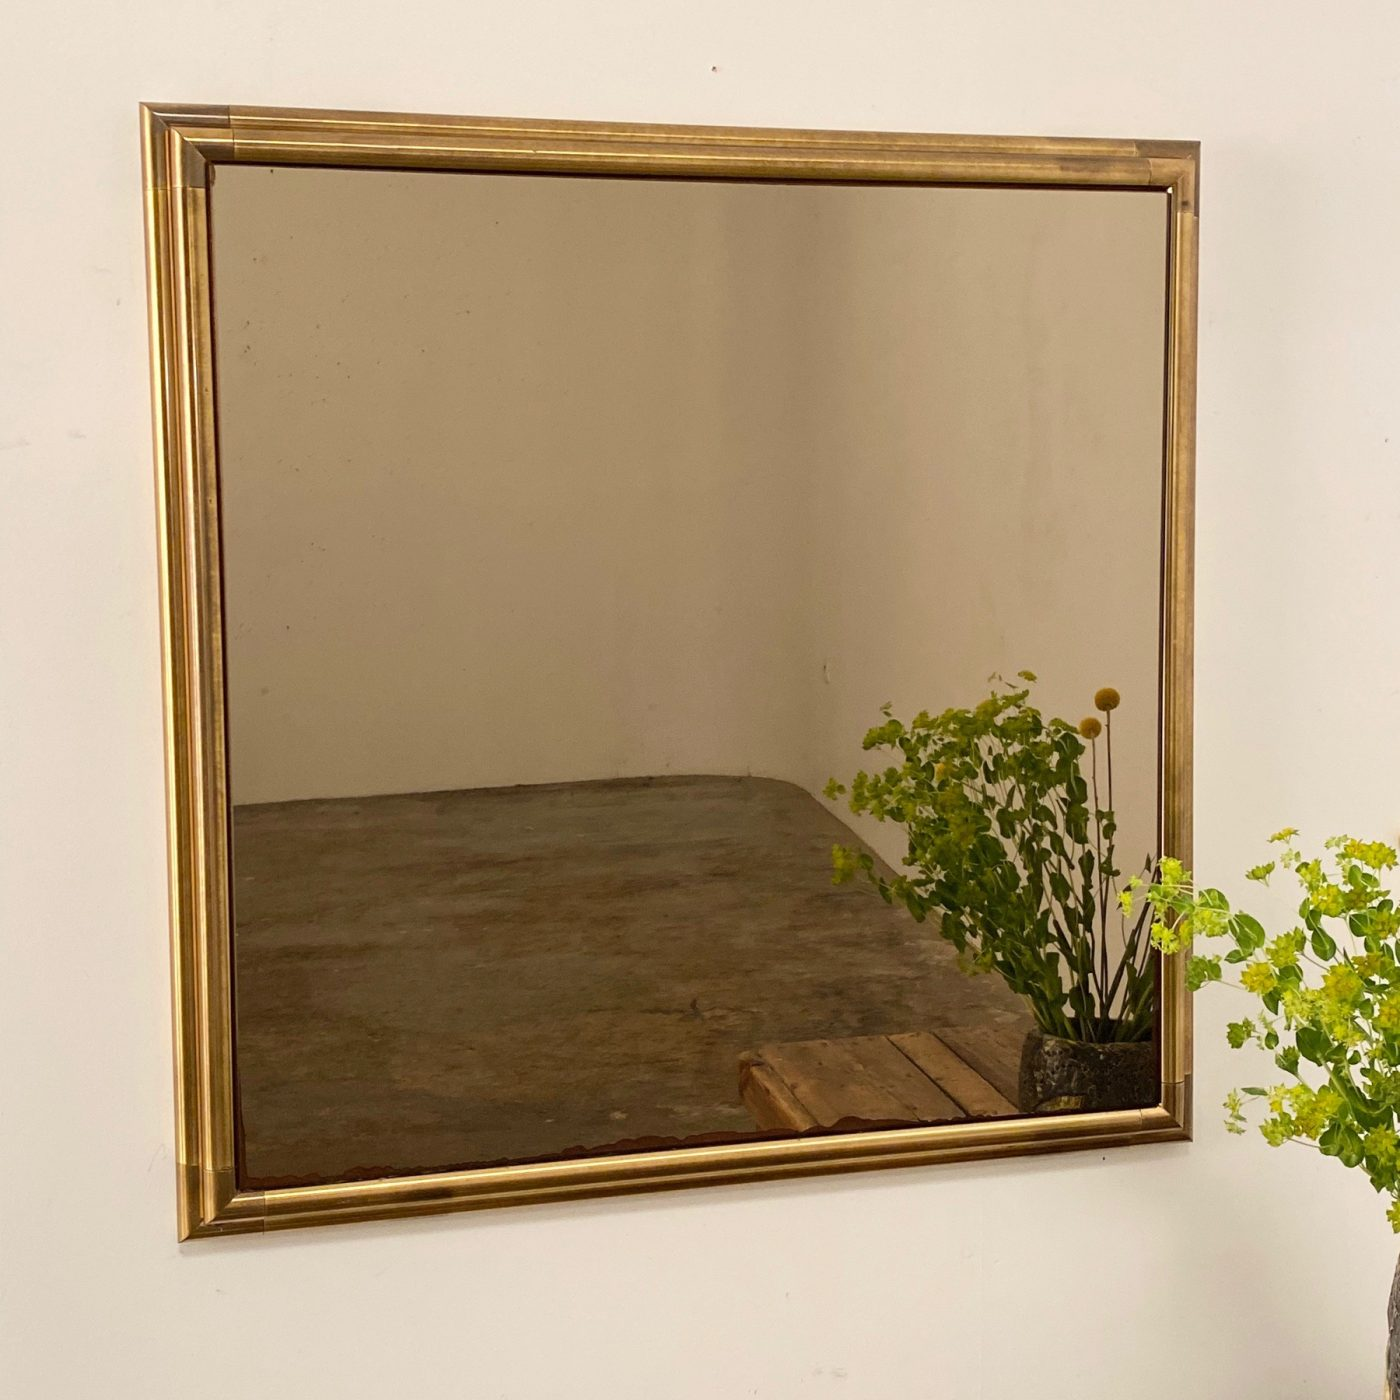 objet-vagabond-copper-mirror0004